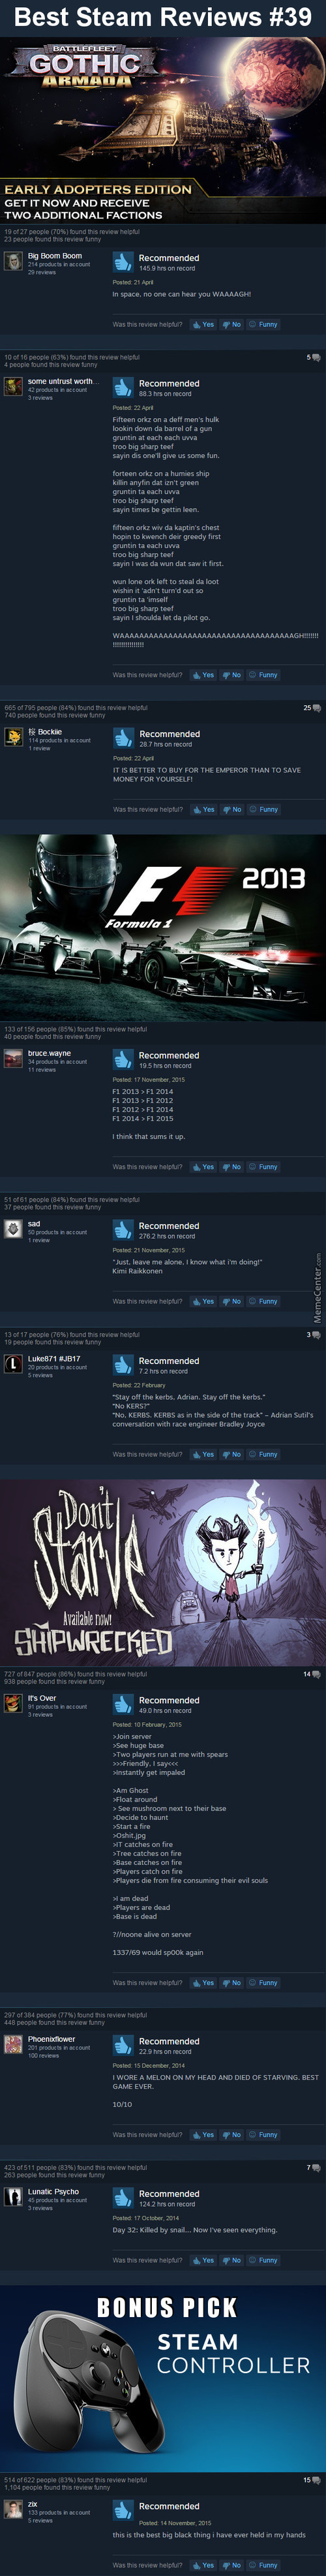 Best Steam Reviews #39 - Spaceship Porn Is Best